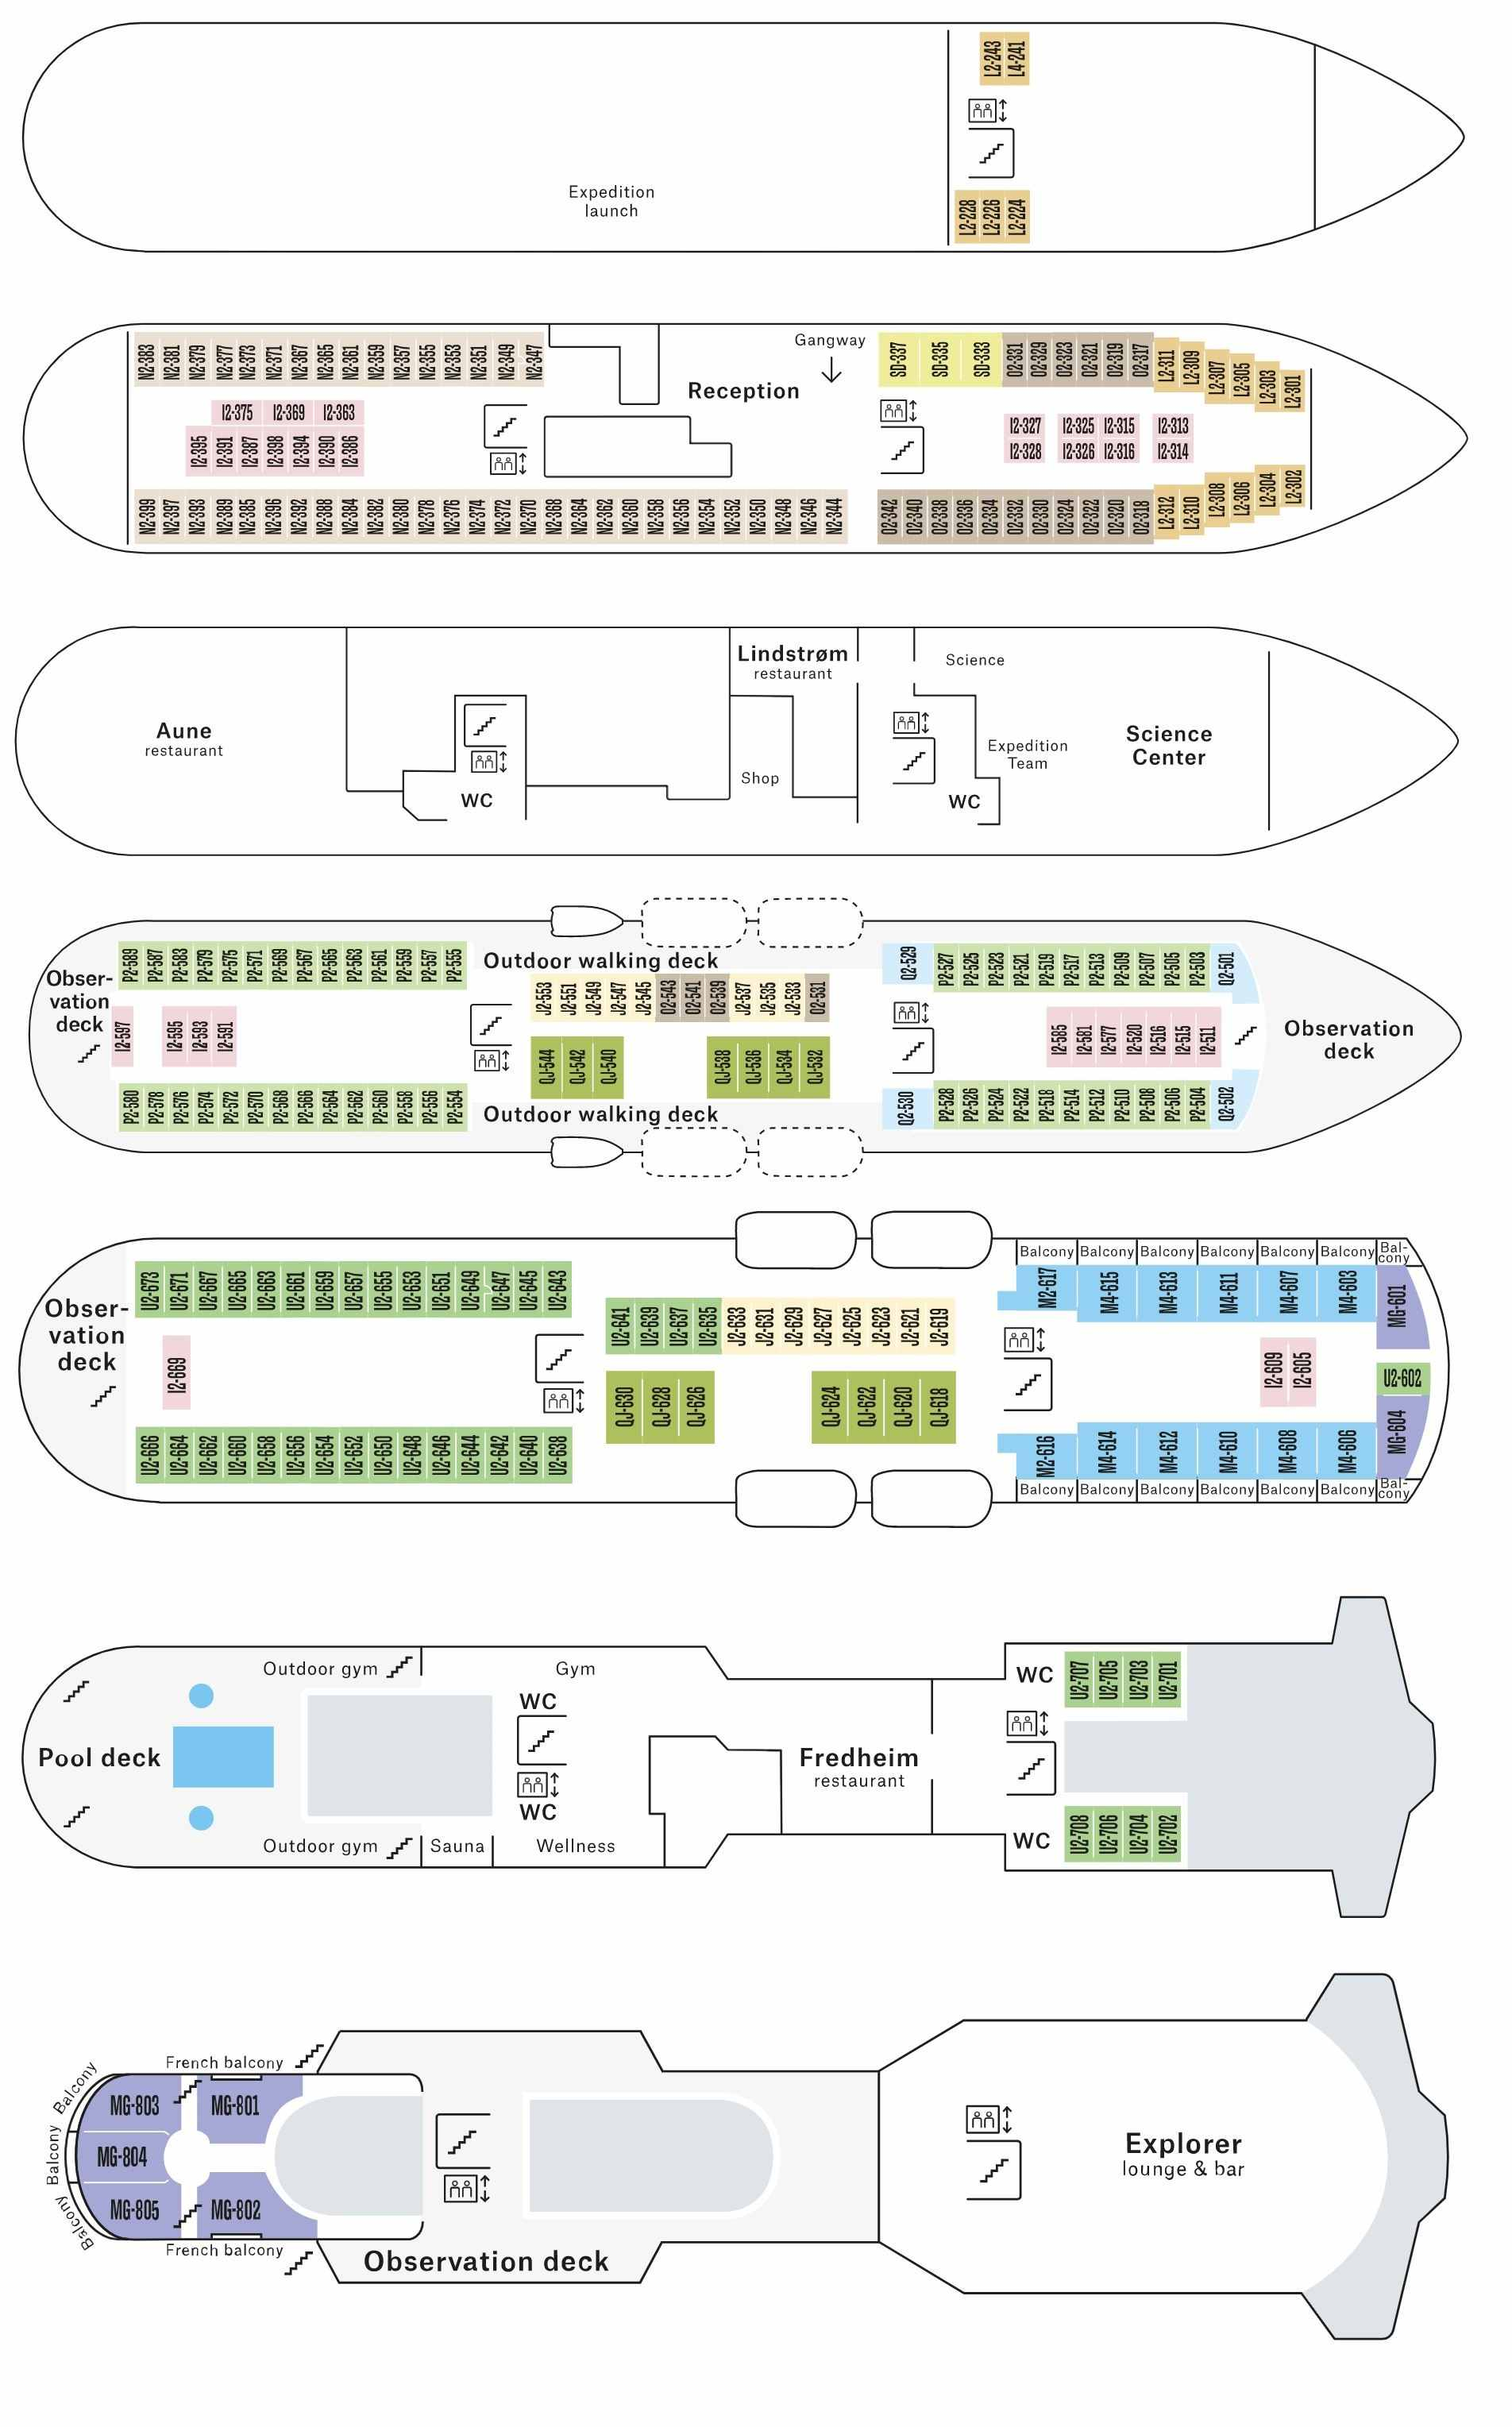 Cabin layout for Otto Sverdrup